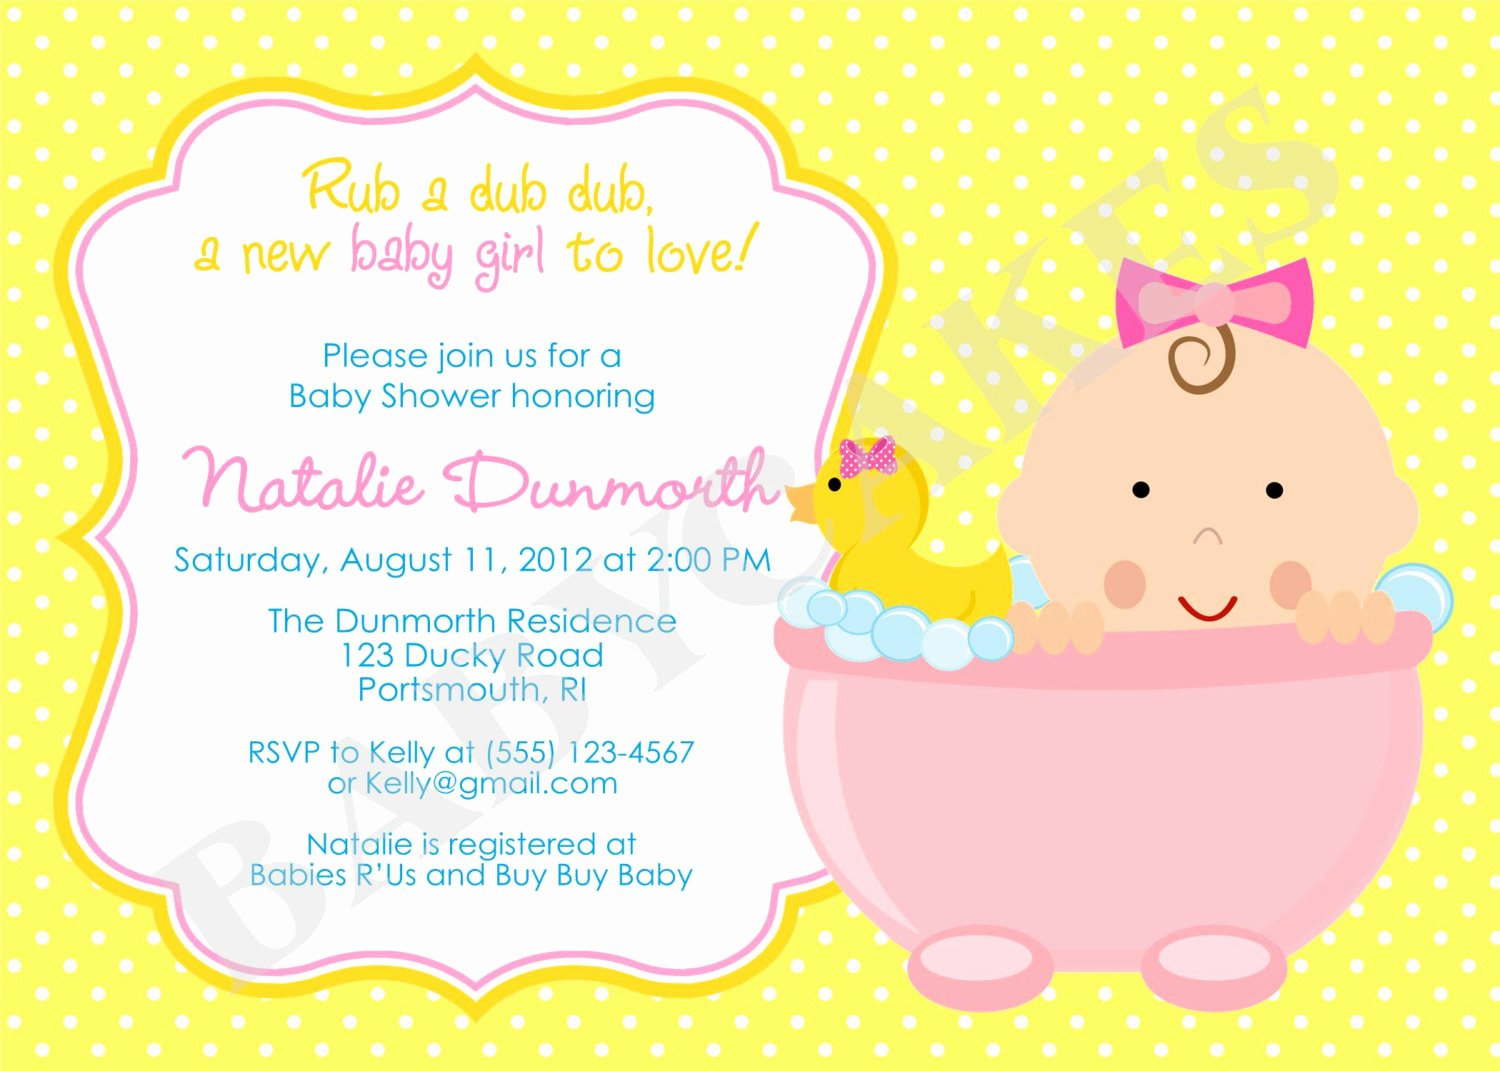 Baby Shower Invite Template Best Of Baby Shower Invite Ideas